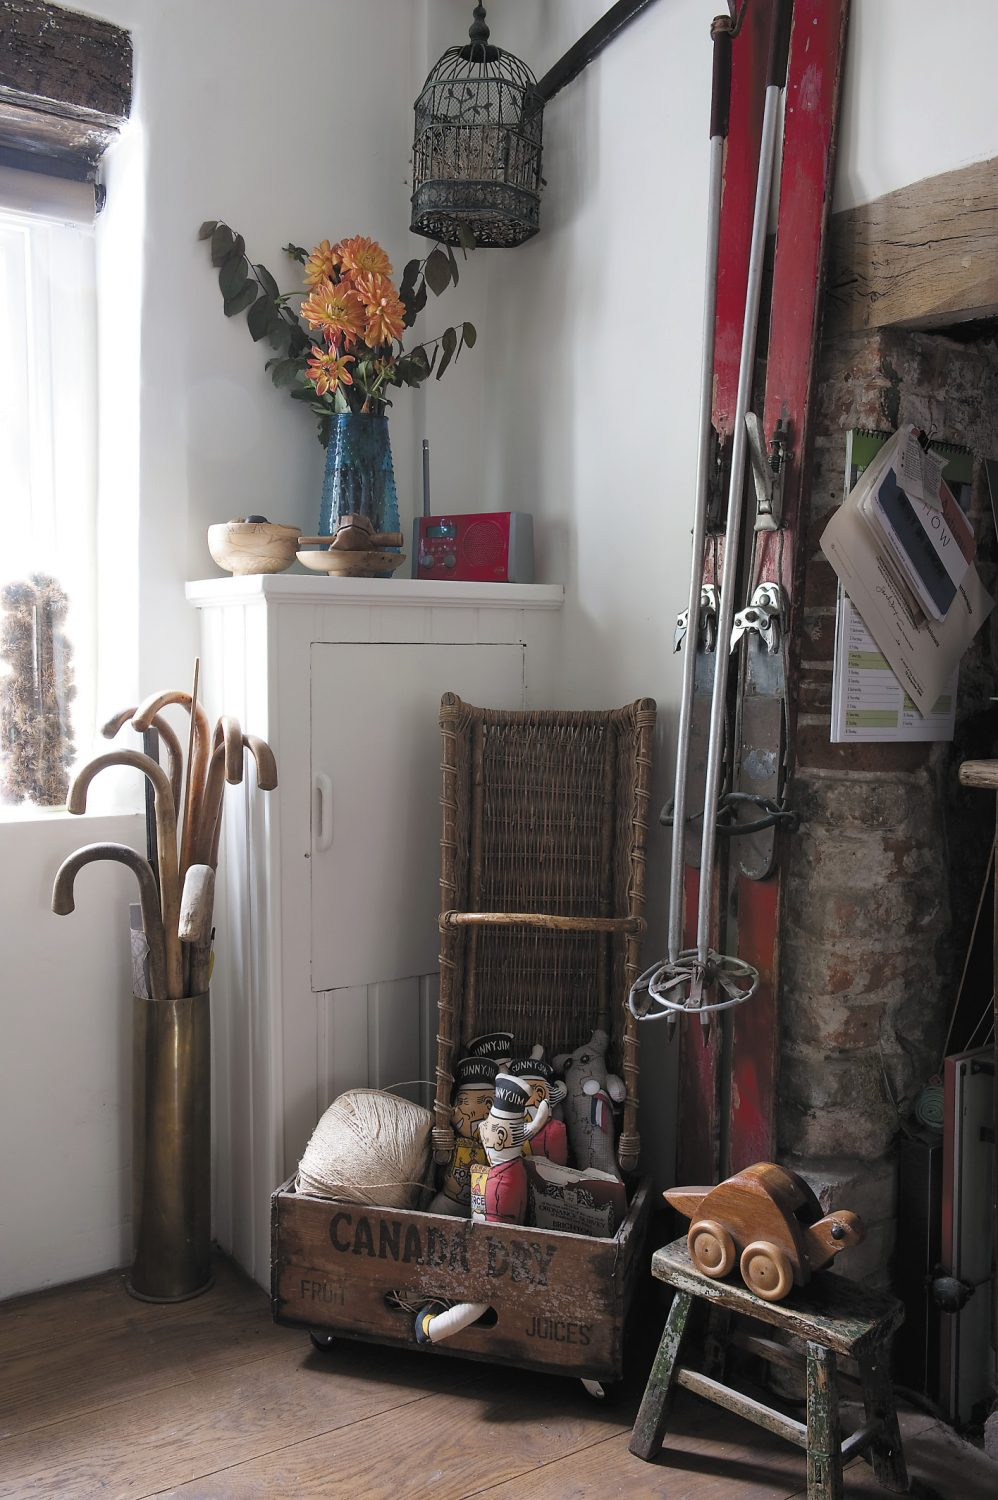 Every nook and cranny is filled with vintage finds and curios. The 'Snatie' snakes that are wound around the beams in the former bread oven are made from reclaimed ties, and are available to buy from Claire's website